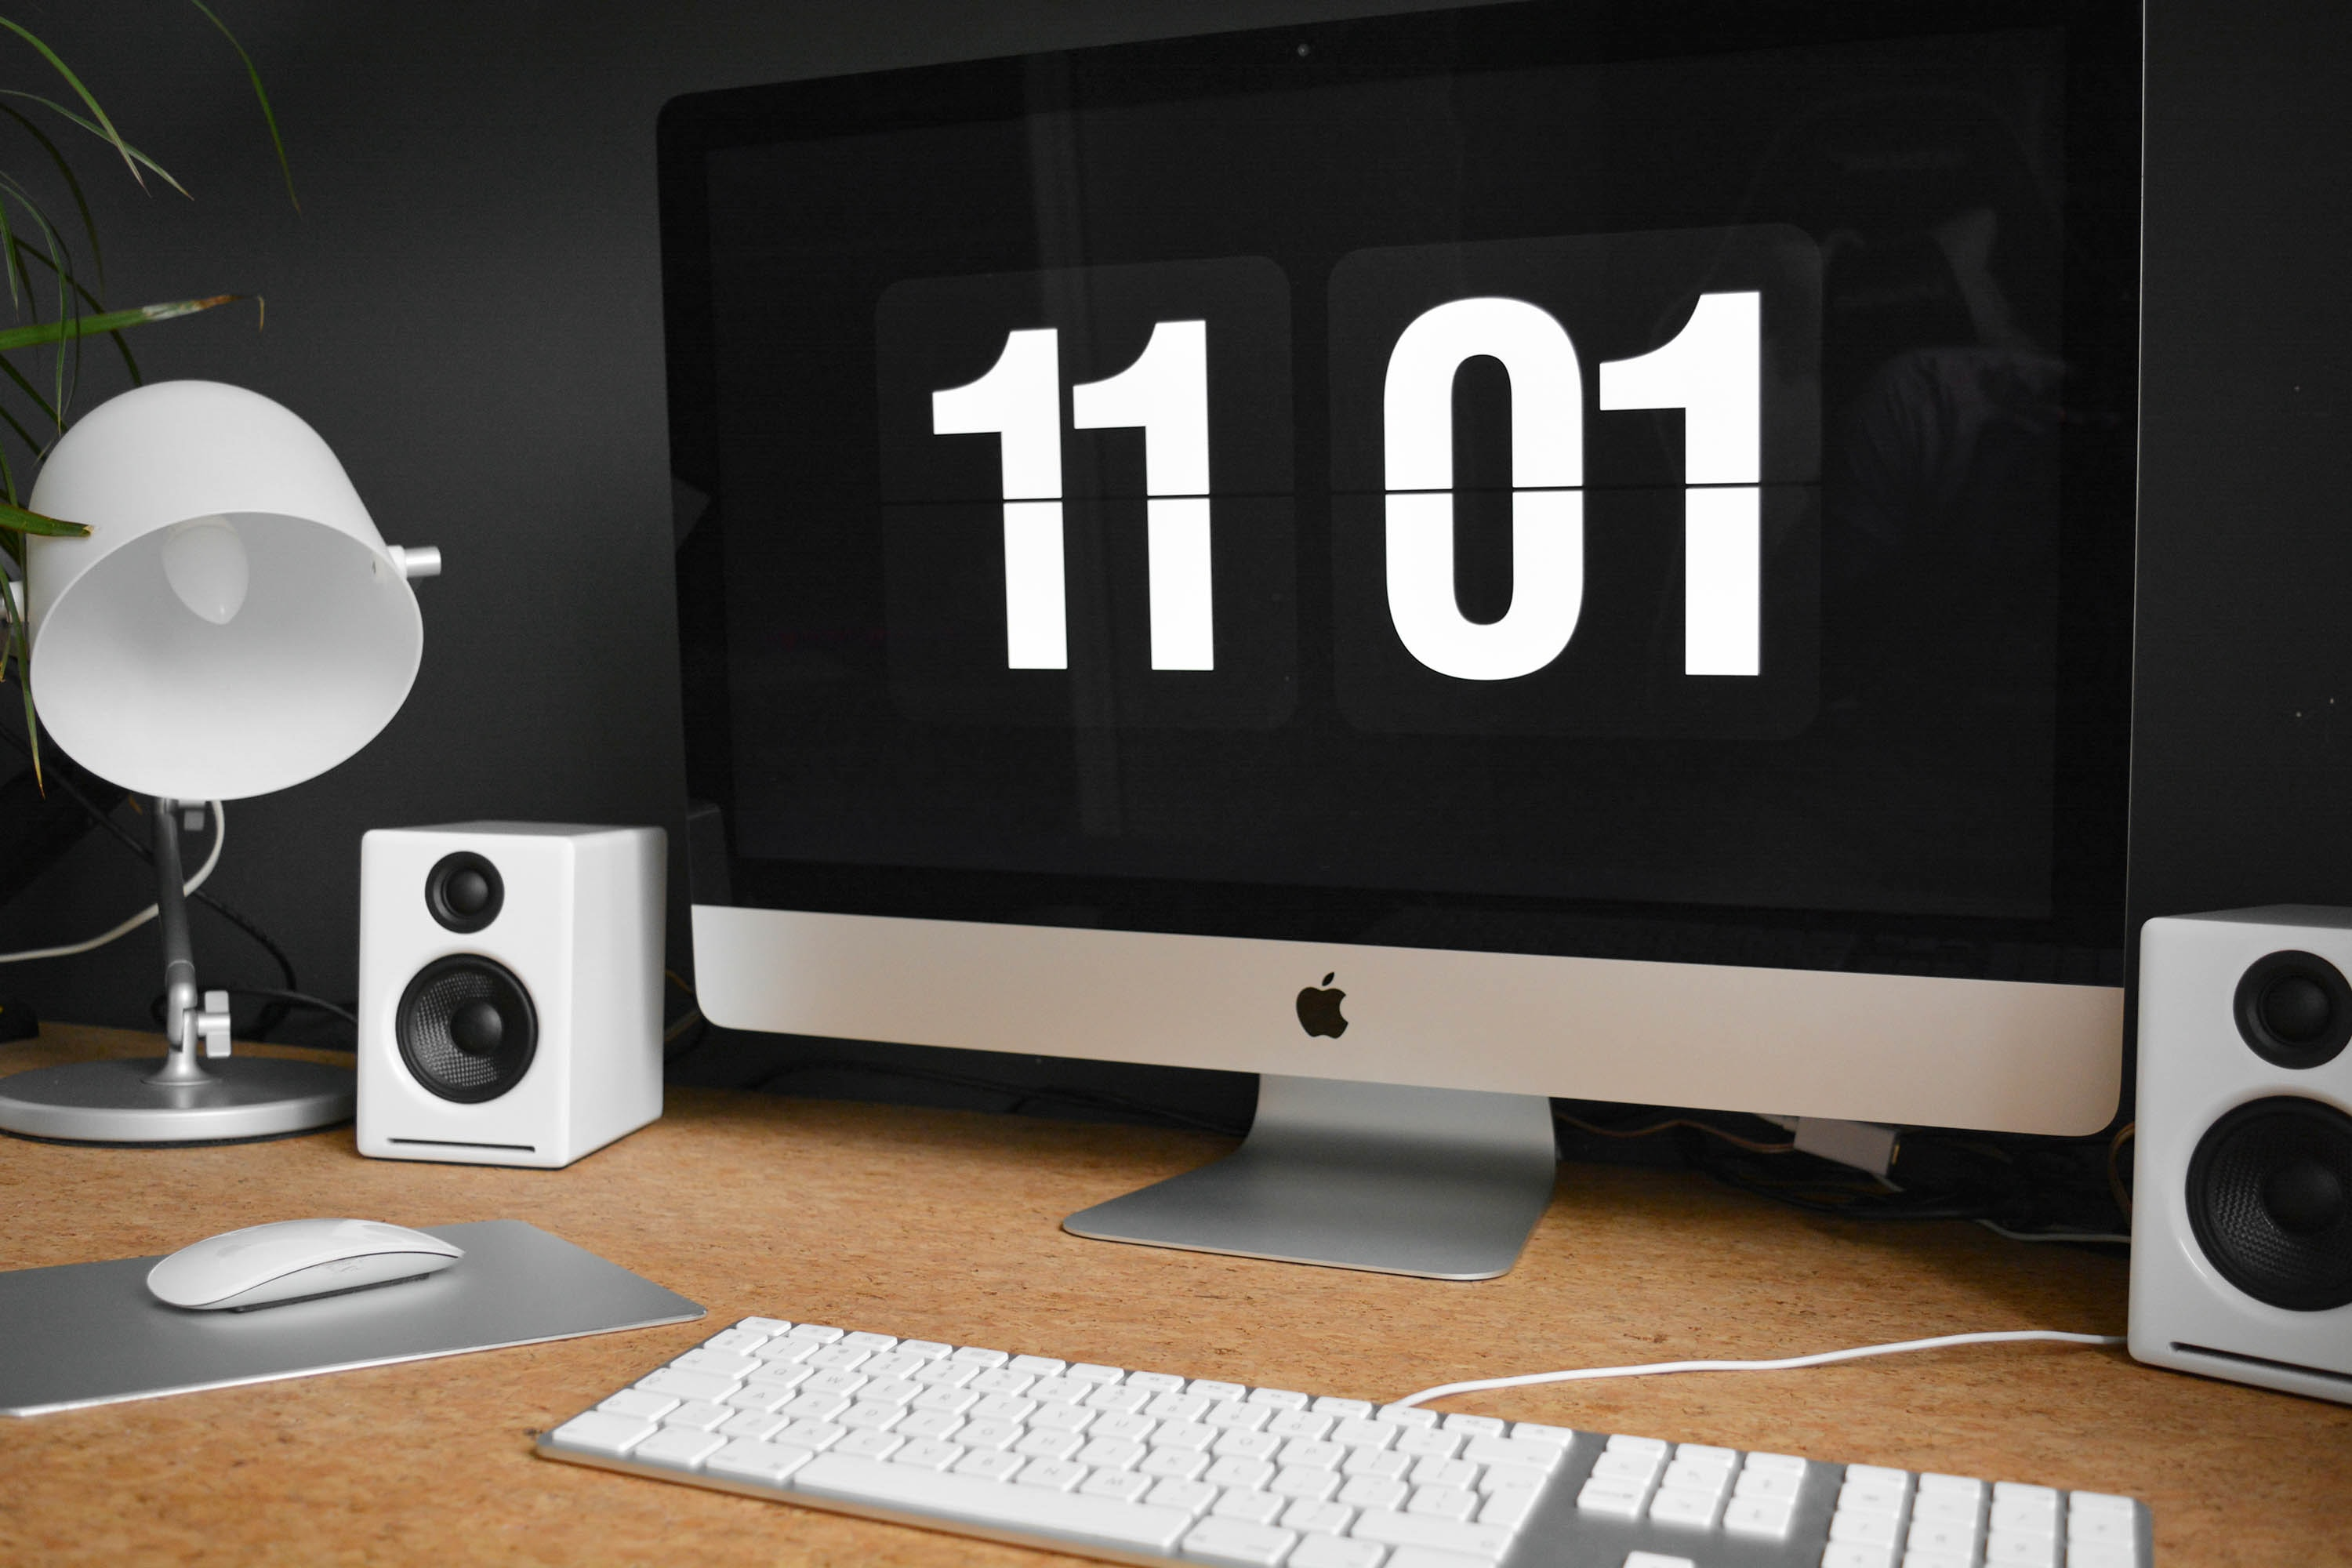 silver iMac with Magic Mouse and Apple Keyboard with Numeric Keypad